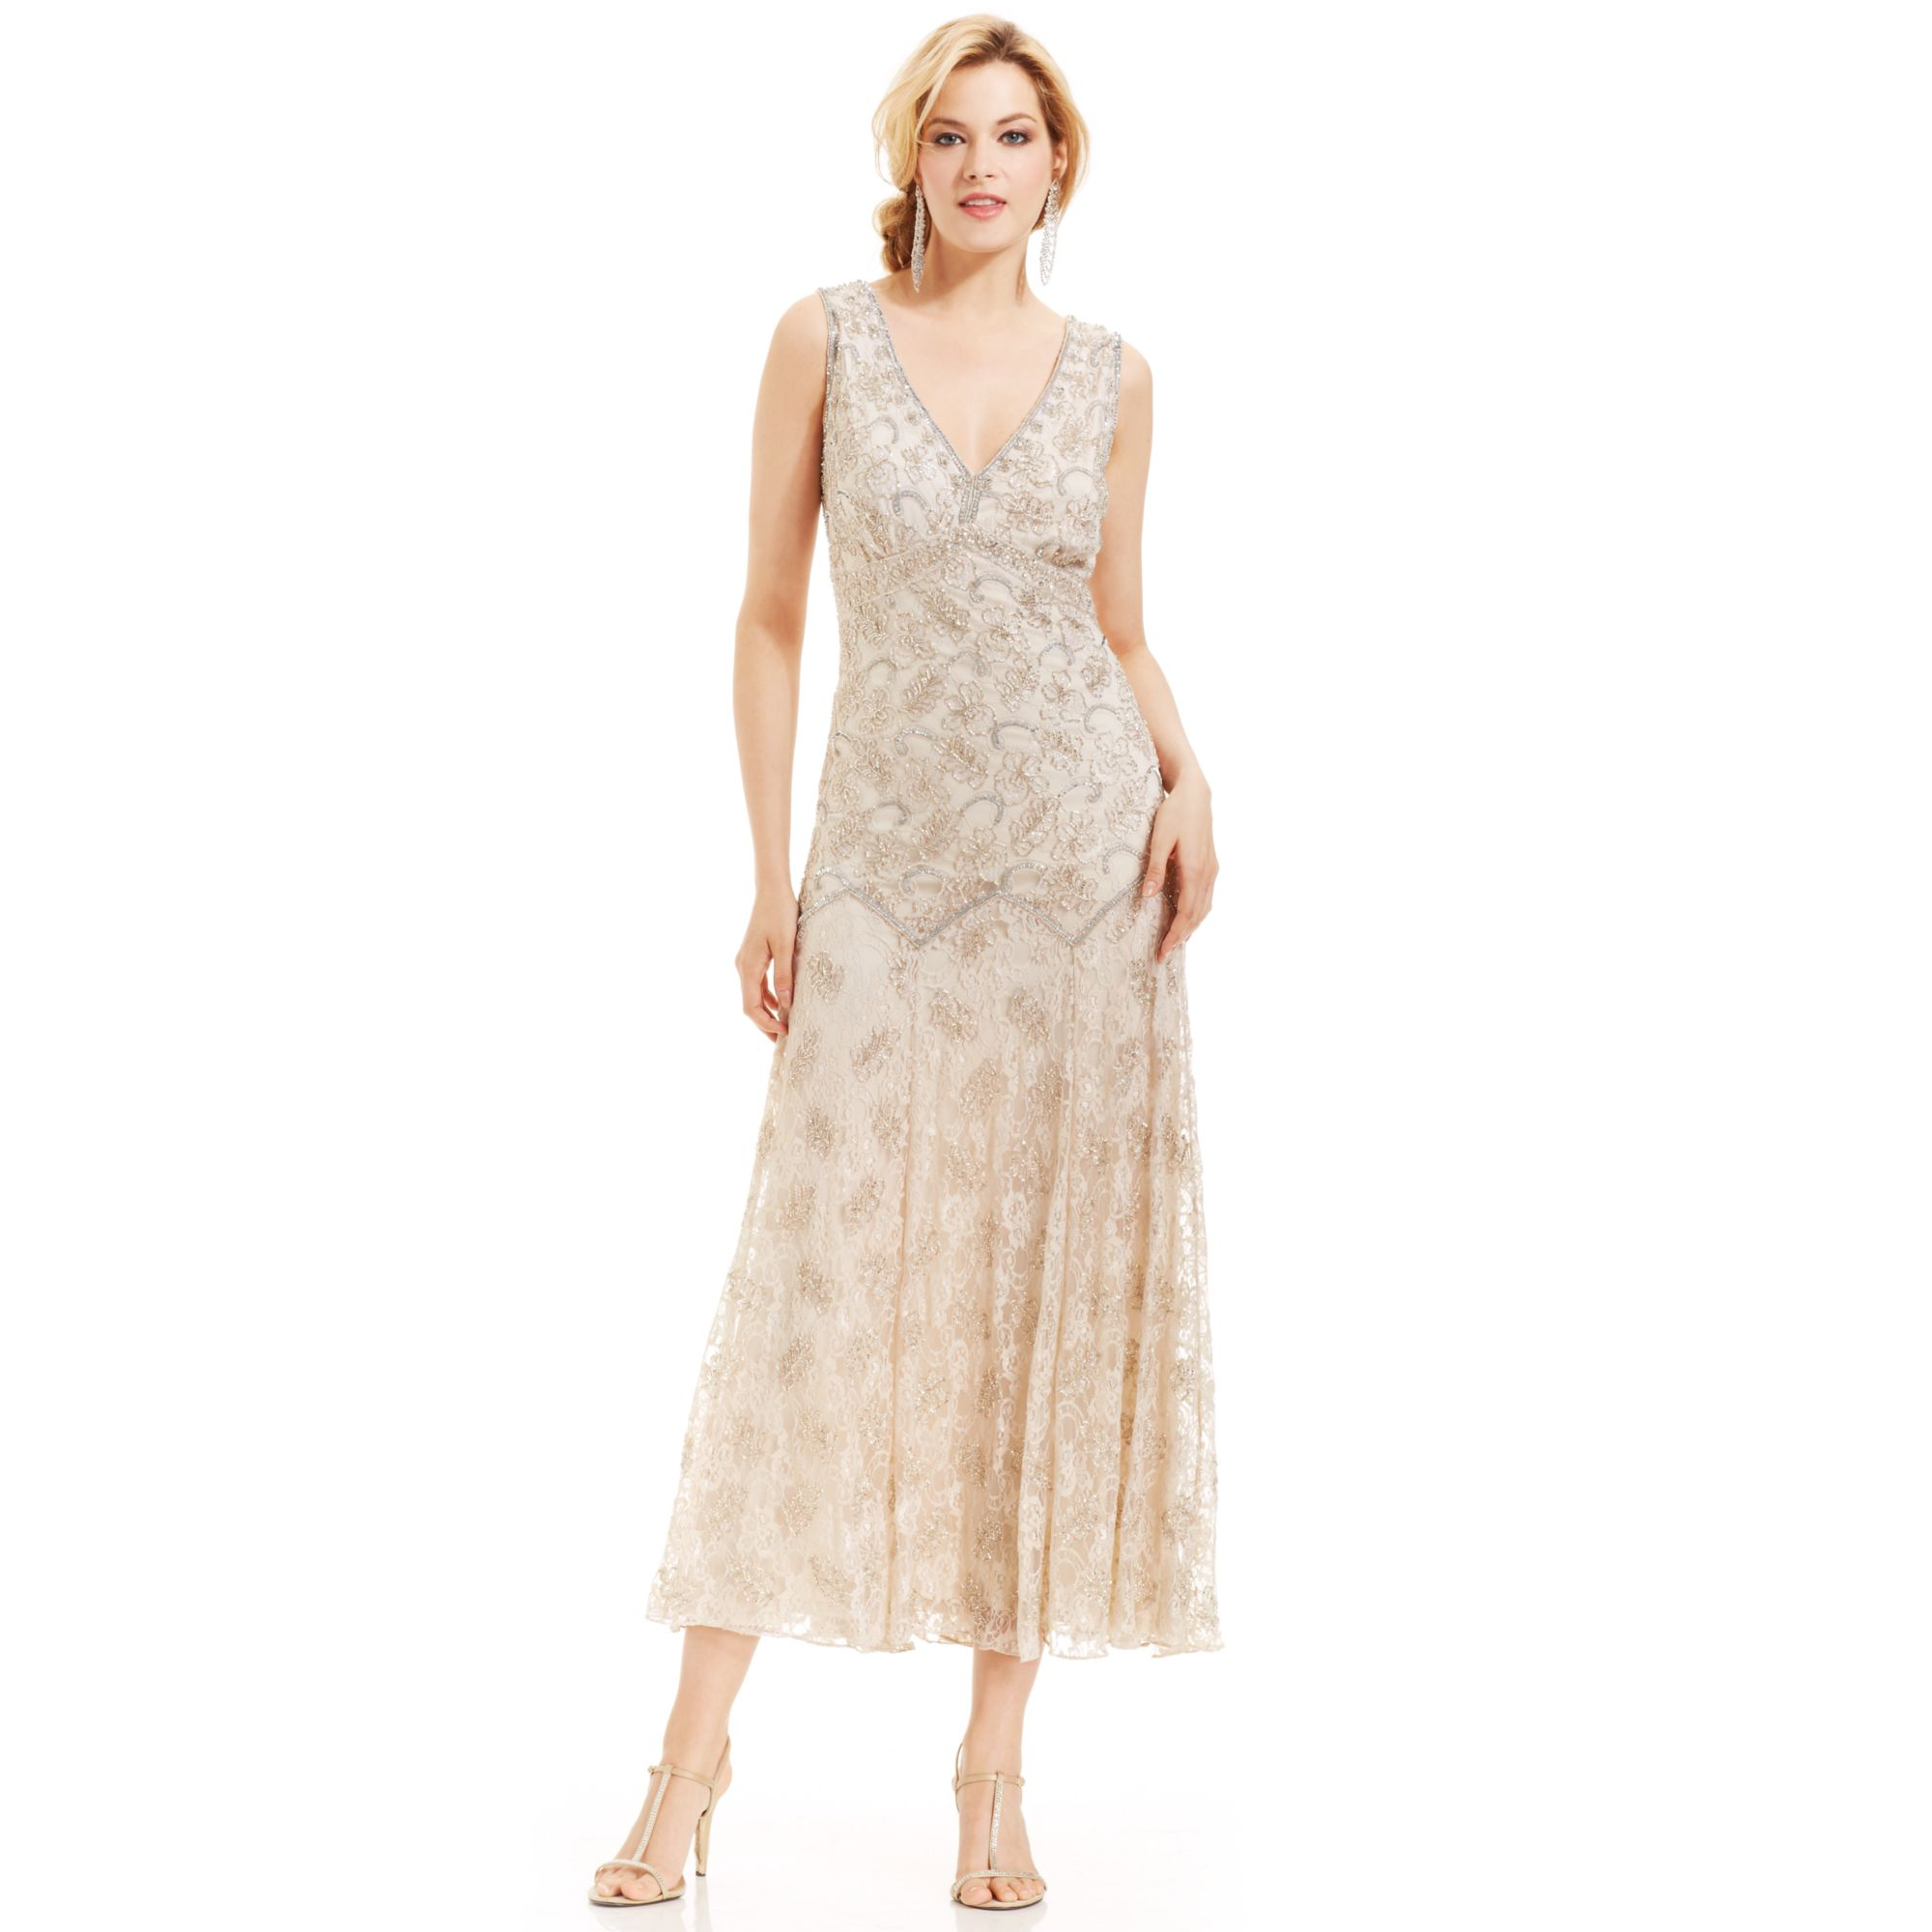 Lyst - Pisarro Nights Sleeveless Beaded Lace Gown in Natural